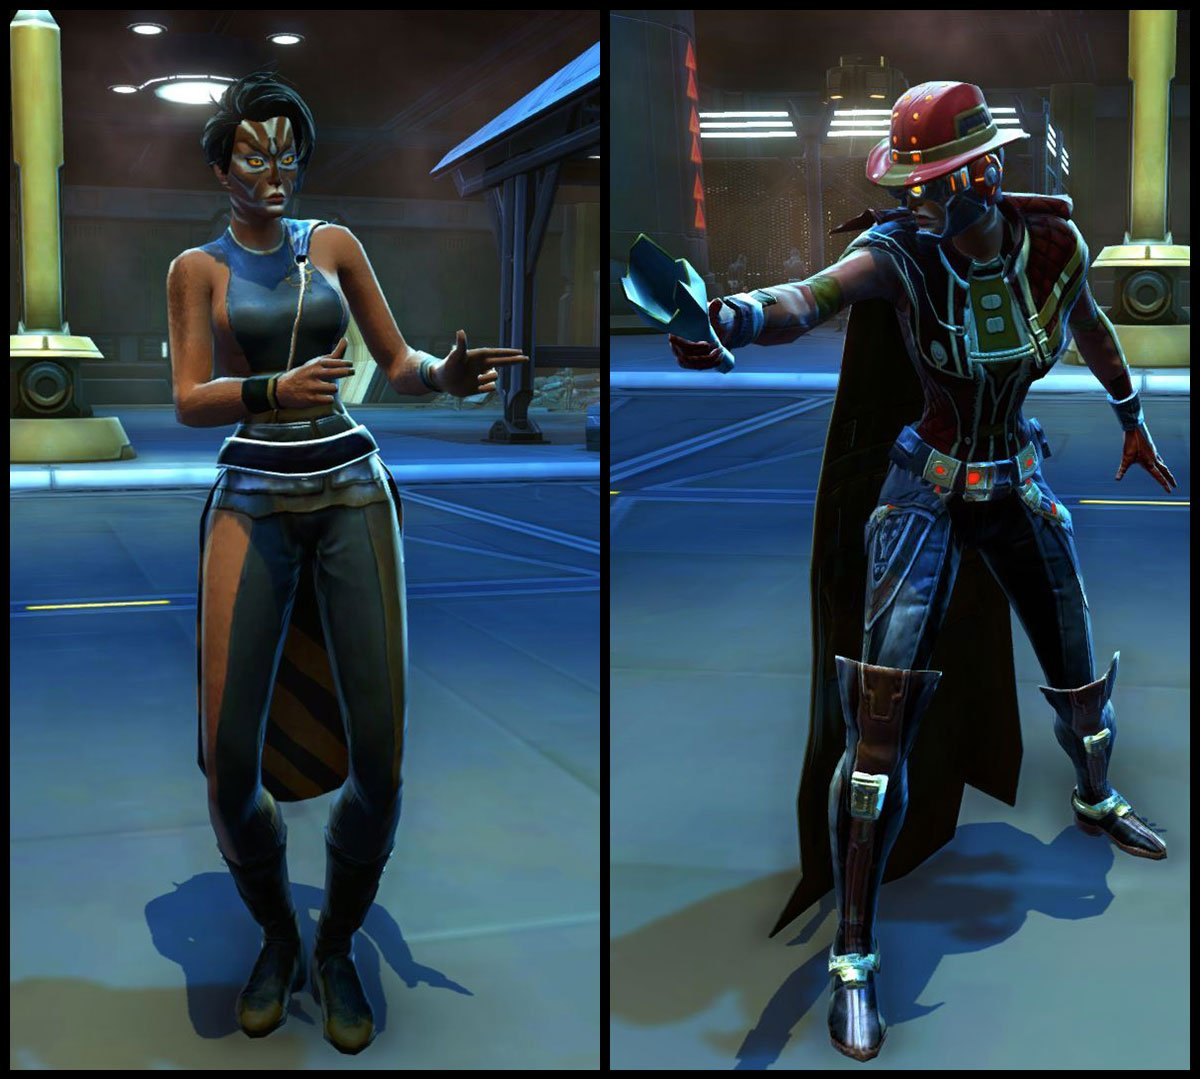 test Twitter Media - Which outfit do you wear when walking down the streets of Nar Shaddaa, the Nightlife Socialite or Kingpin Armor set? https://t.co/ye20rCdZq4